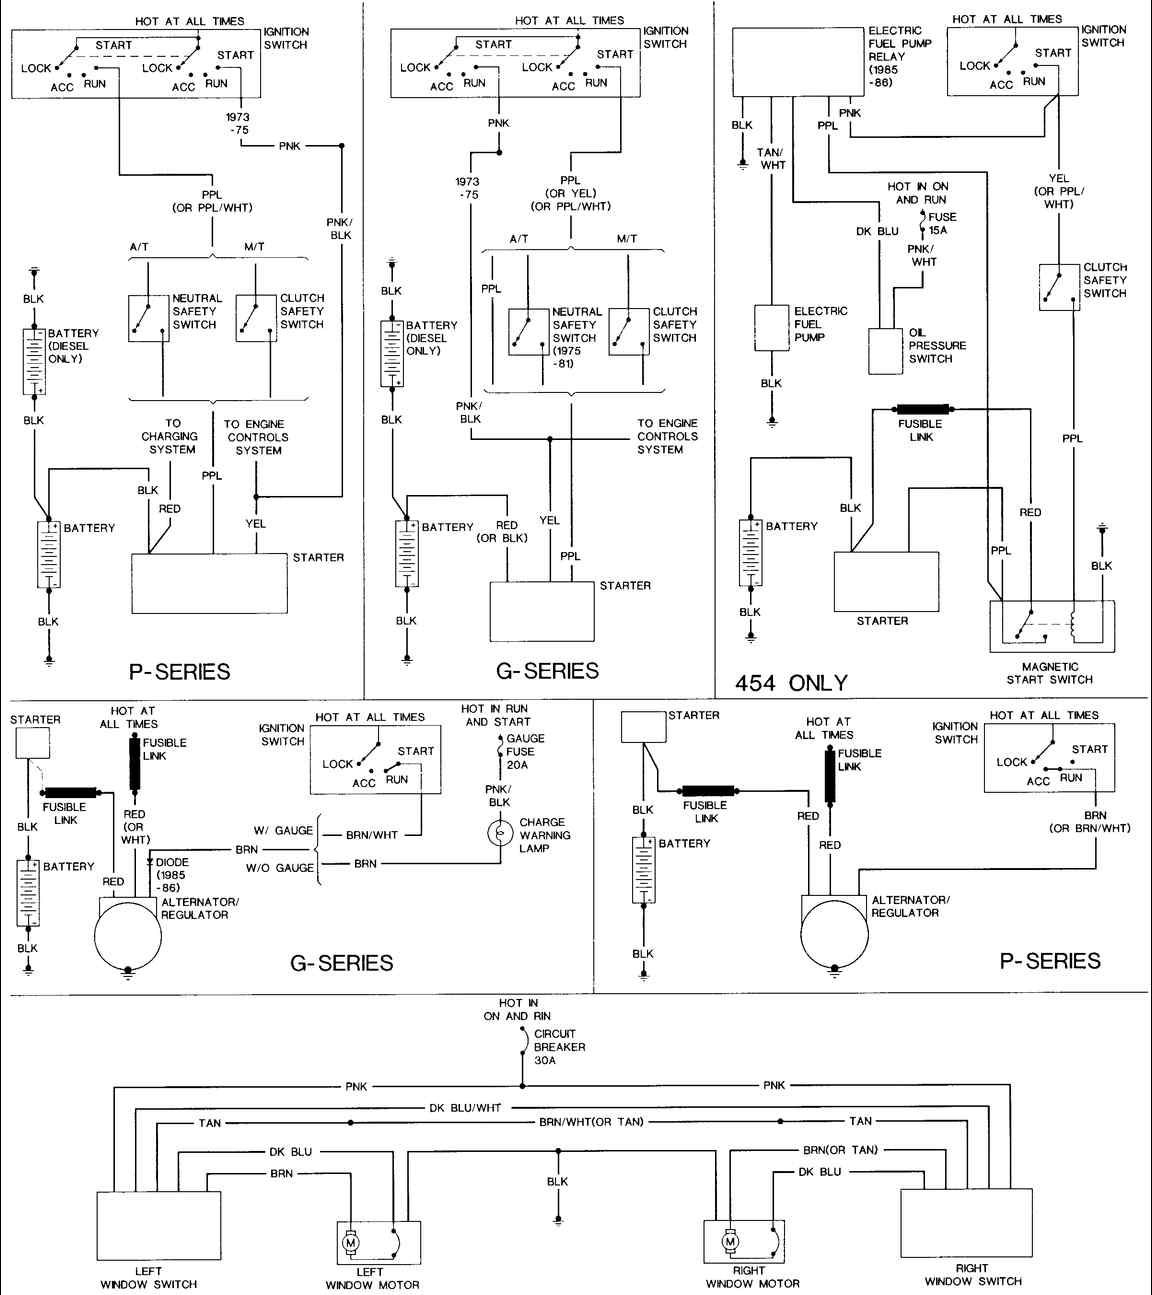 84 Silverado Headlight Wiring Diagram Starting Know About Bulkhead Schematic 1970 Chevrolet C10 Chevy Truck Steering Wheel Rh Asparklingjourney Com 1984 K10